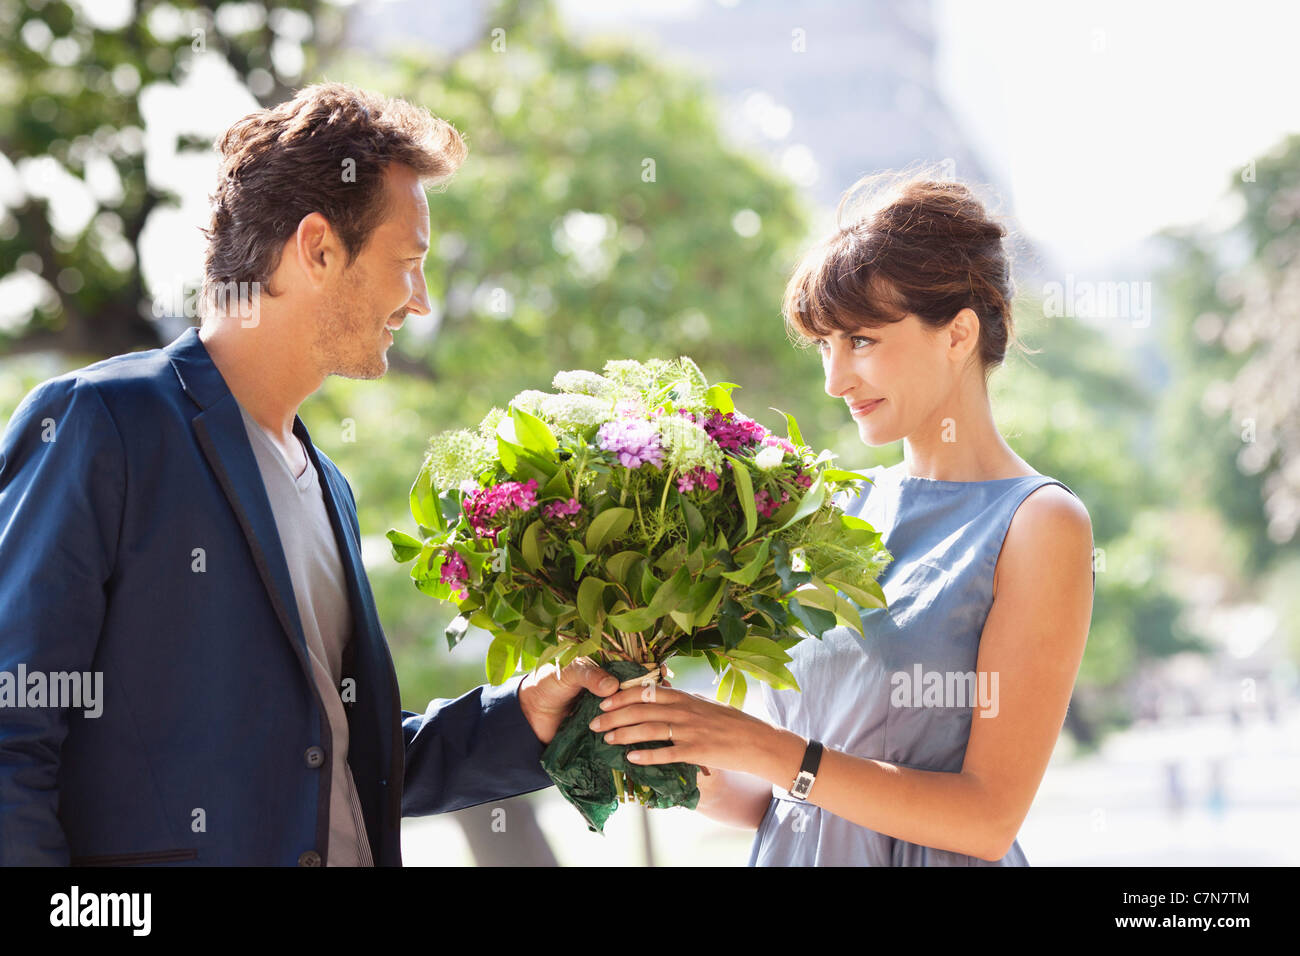 Man giving a bouquet of flowers to a woman with the Eiffel Tower in ...